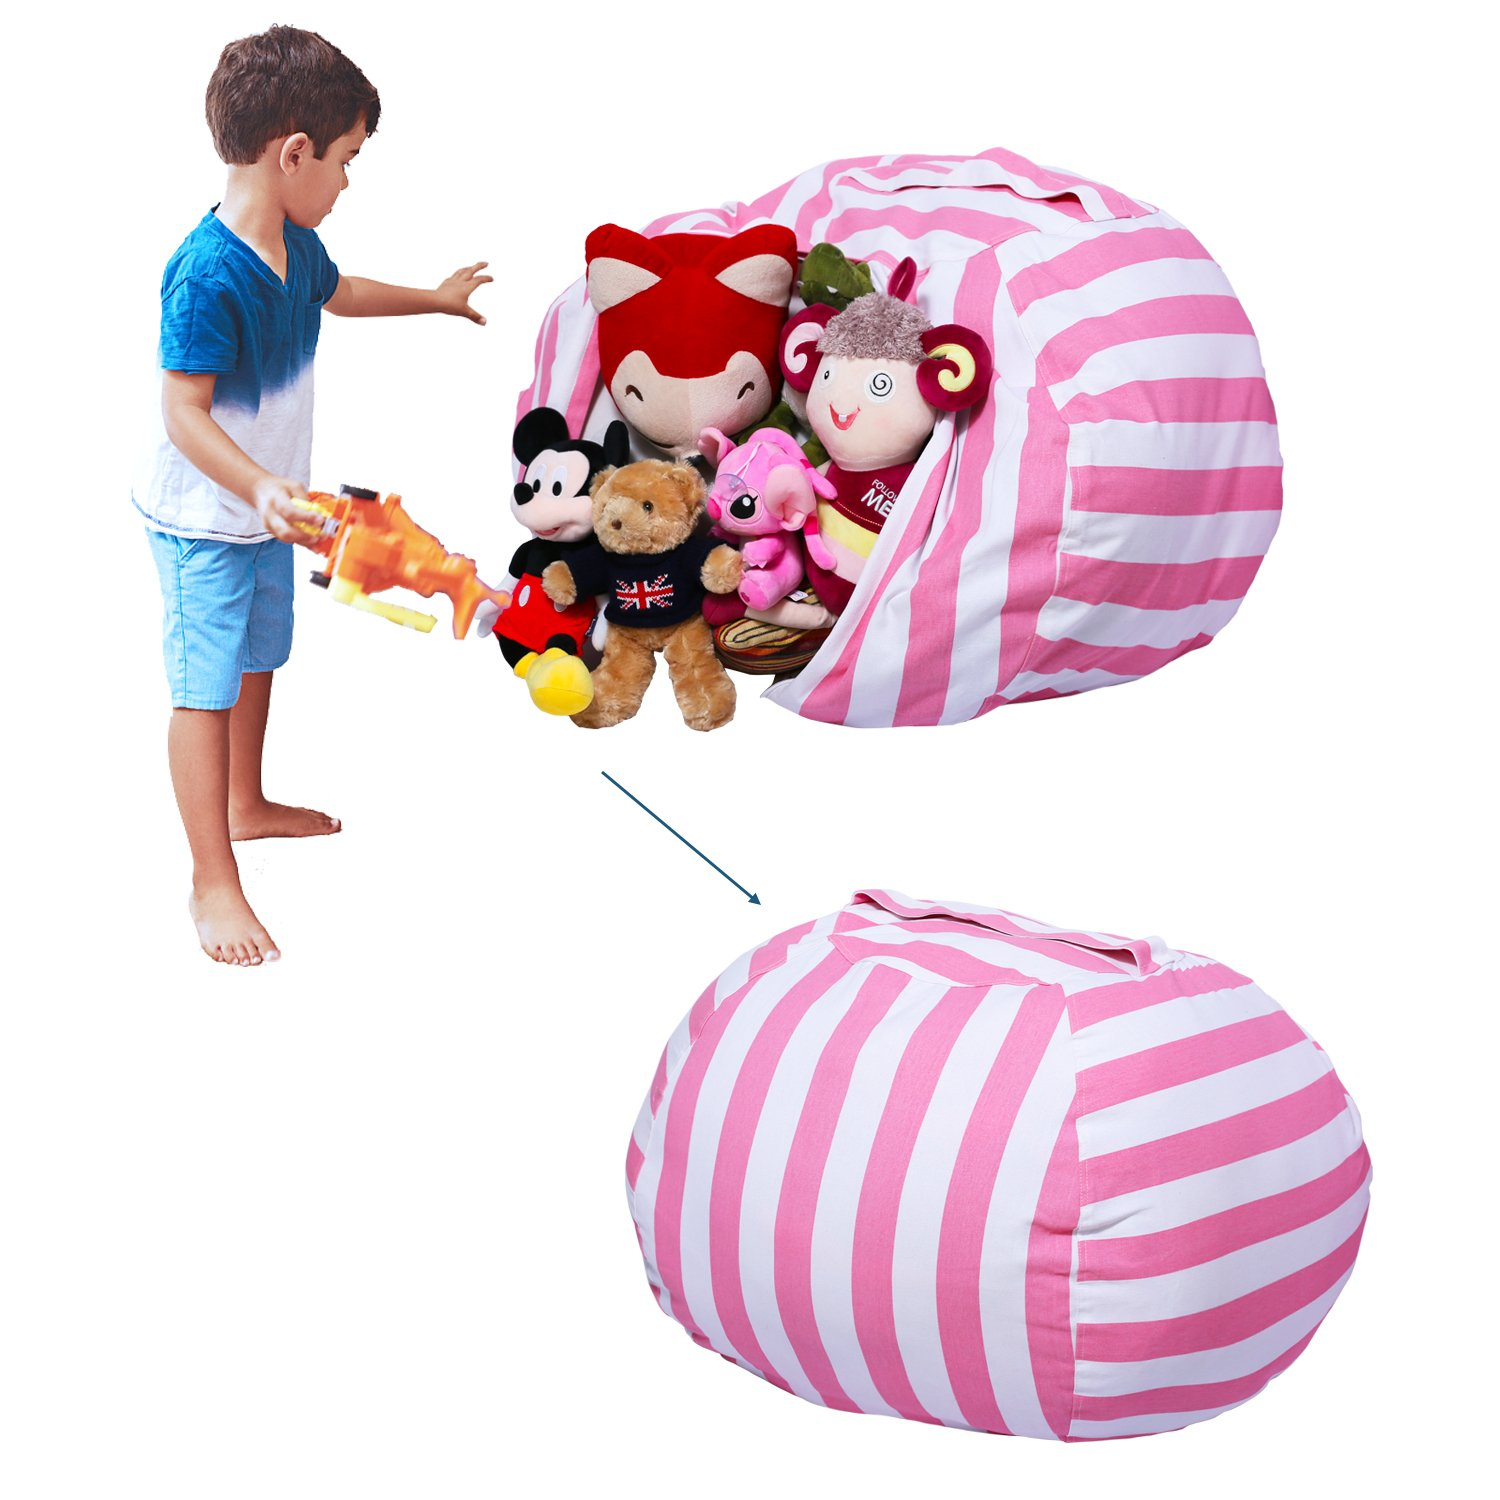 Yotree Stuffed Animal Storage Bean Bag Chair Useful Extra Large Kids Toy Organizer Clean up the Room and Put Those Critters in Order(Pink Stripes)